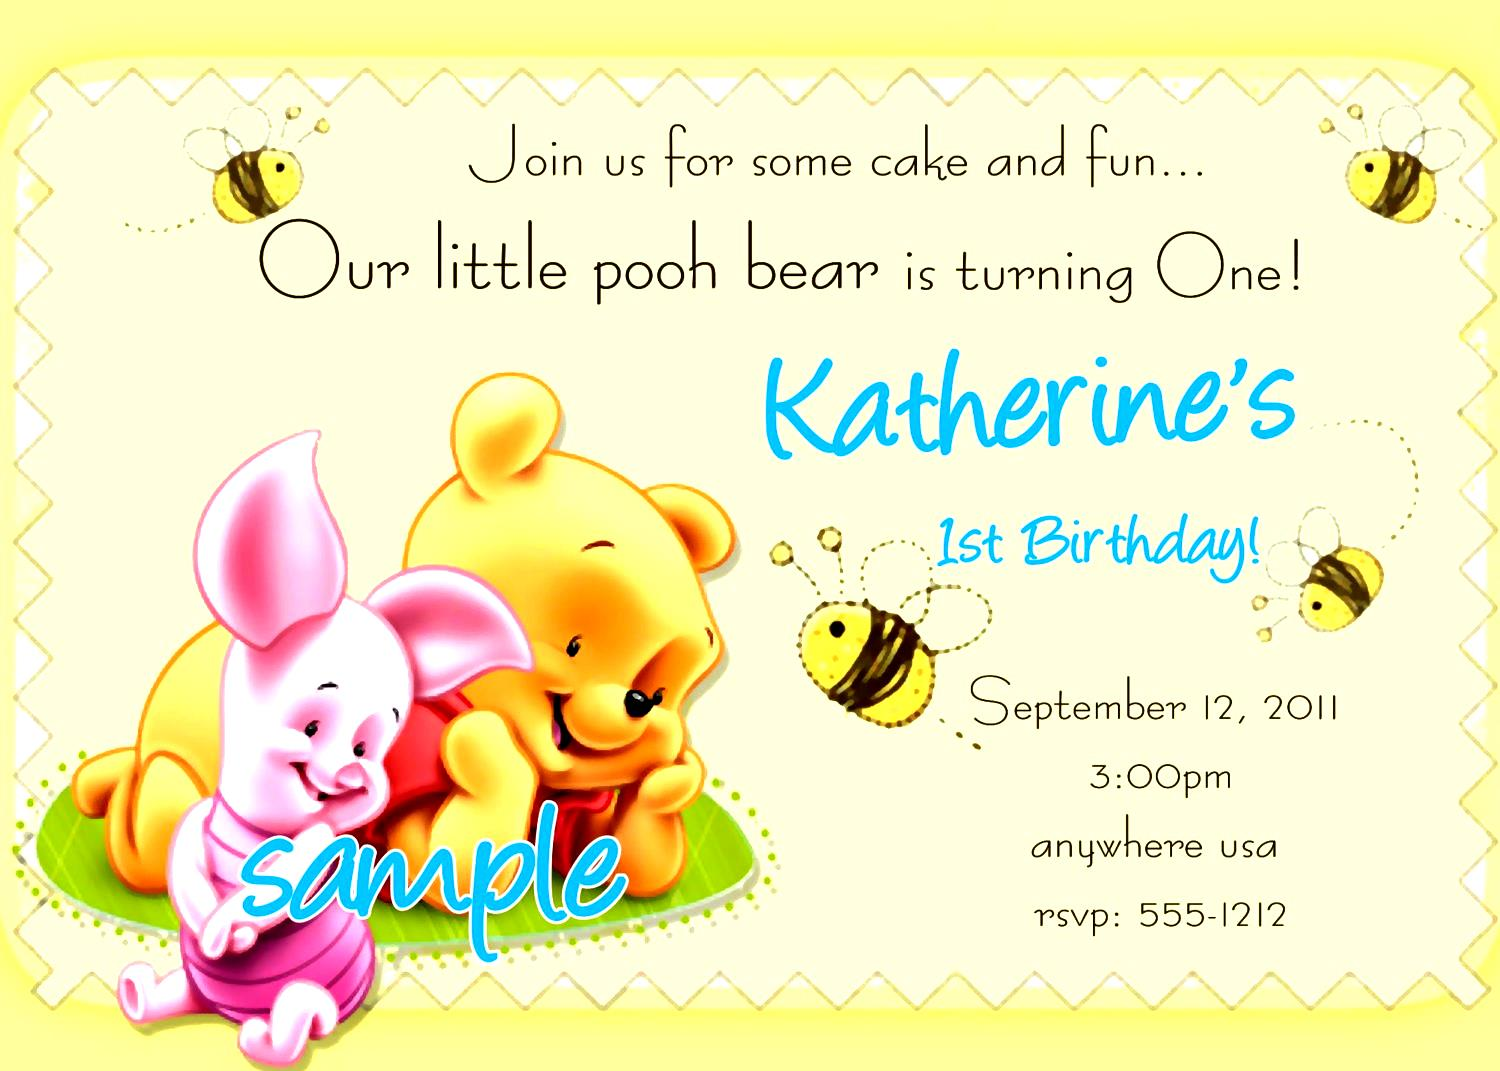 Birthday invitation card template for kids boatremyeaton birthday invitation stopboris